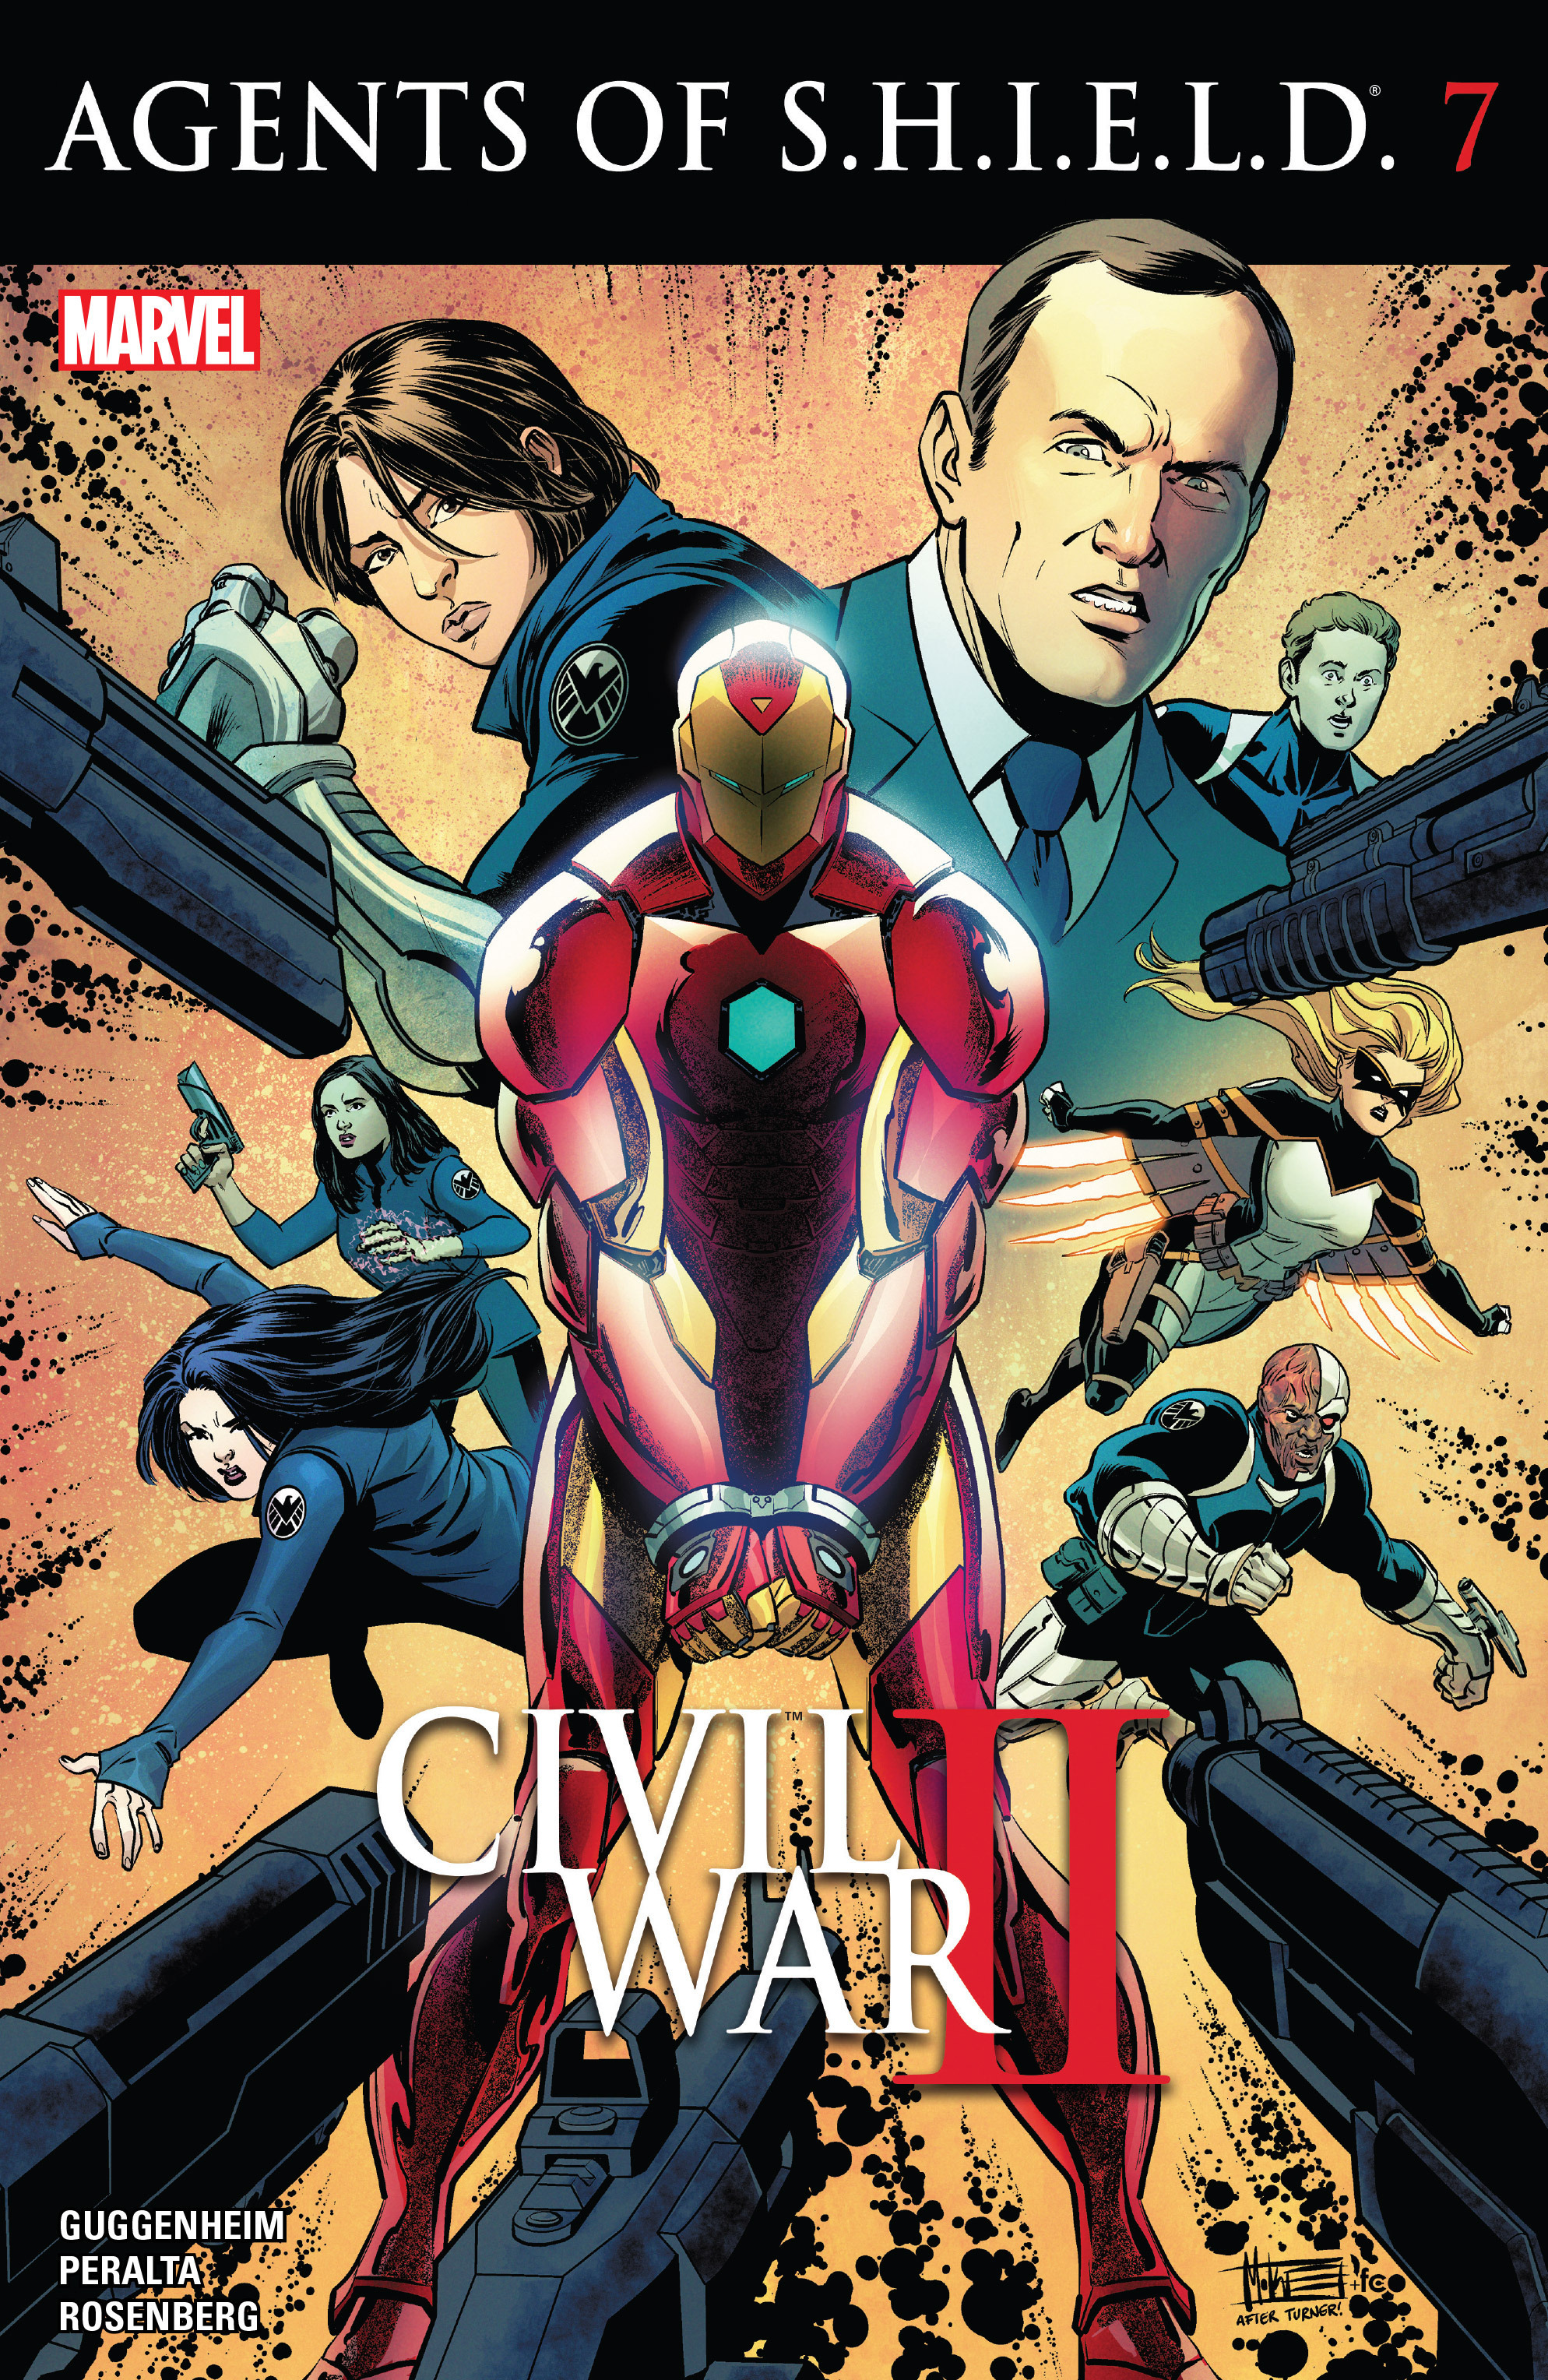 Read online Agents of S.H.I.E.L.D. comic -  Issue #7 - 1